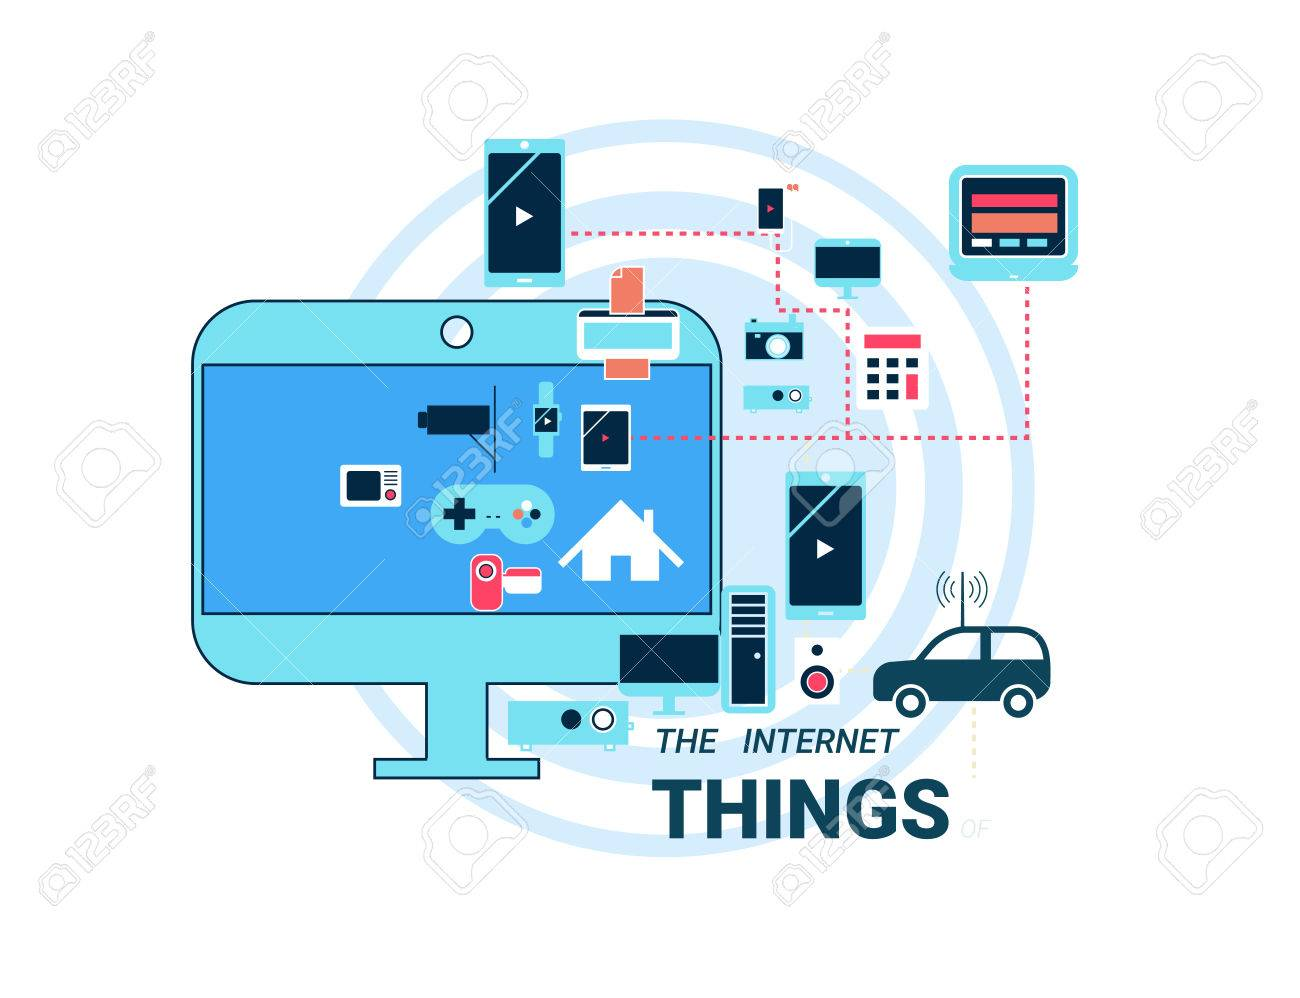 Smart Appliances In Network. Concept For Internet Of Things Showing ...